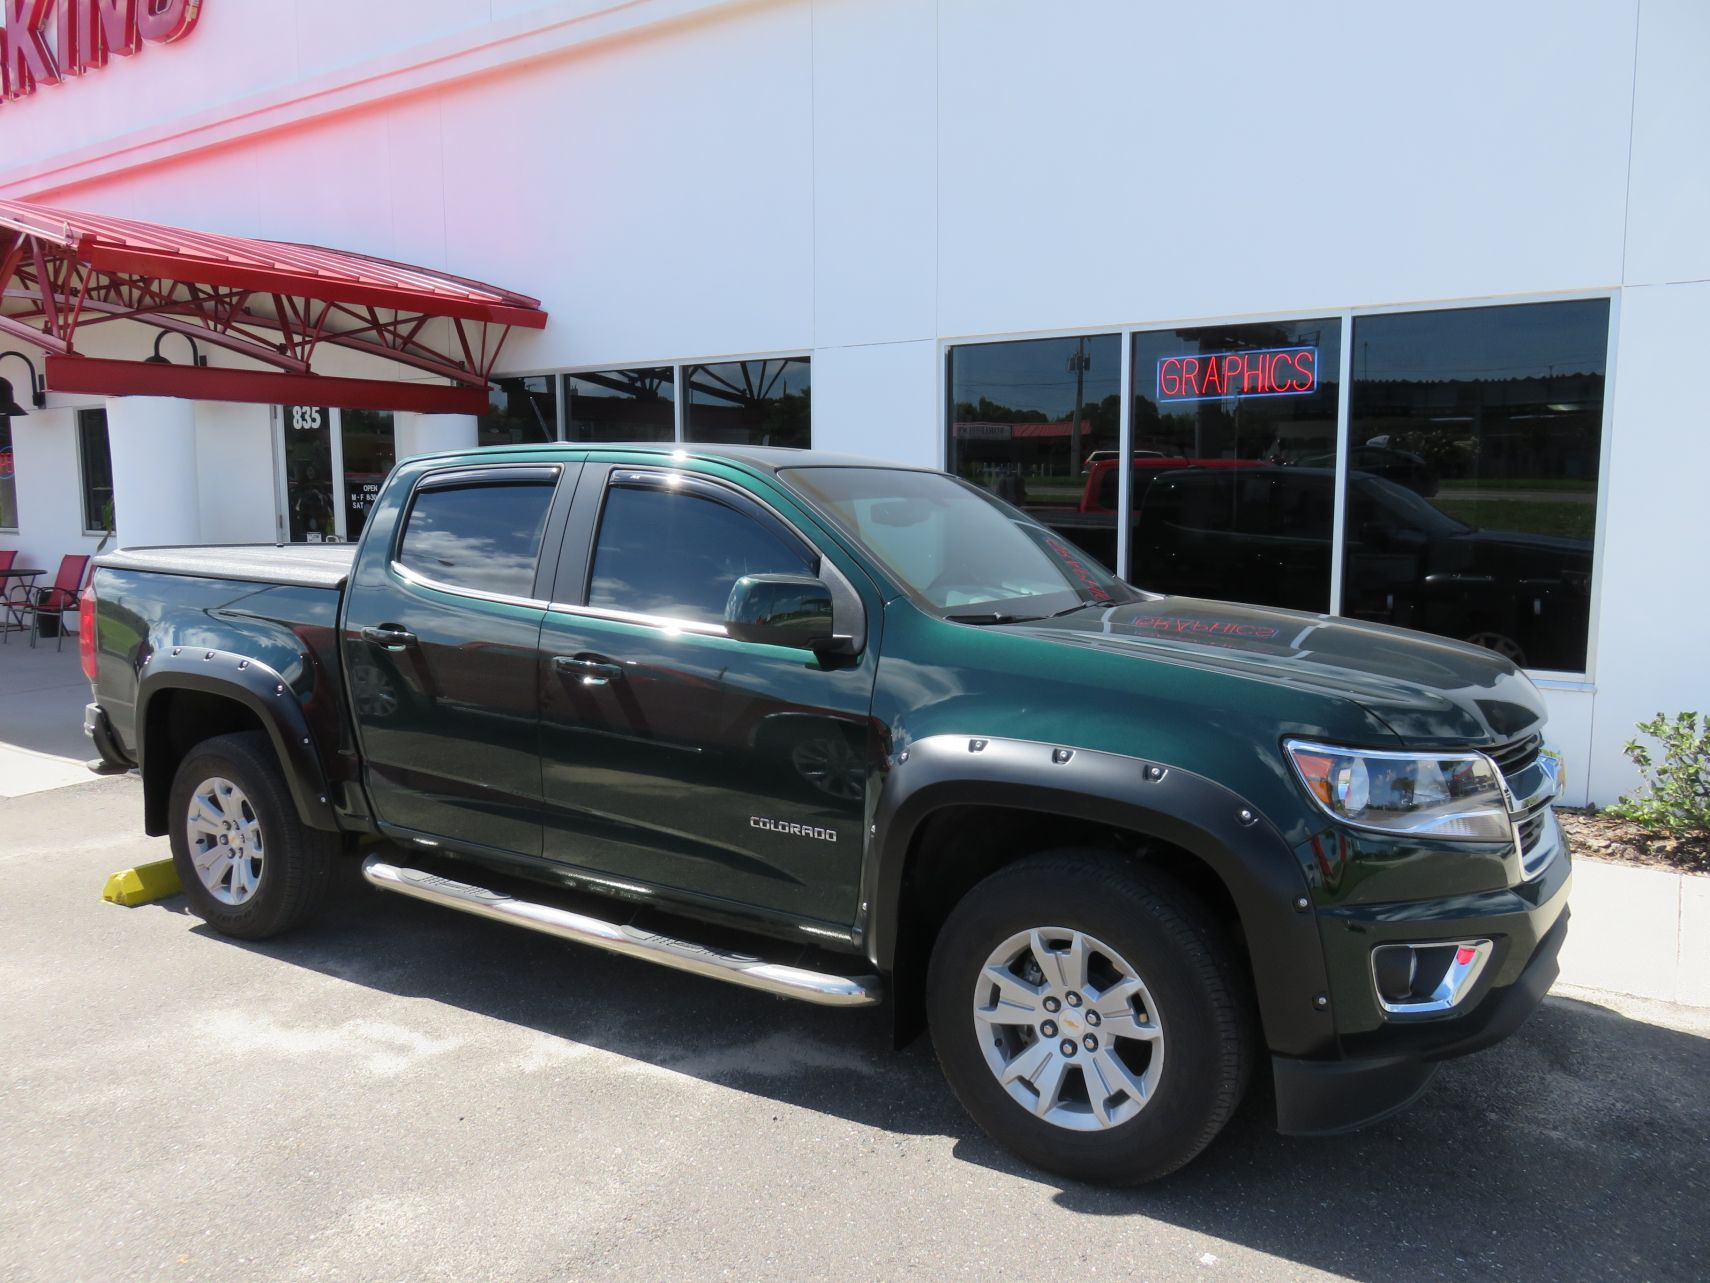 2015 Green Chevy Colorado Bushwacker Fender Flares Topperking Topperking Providing All Of Tampa Bay With Quality Truck Accessories